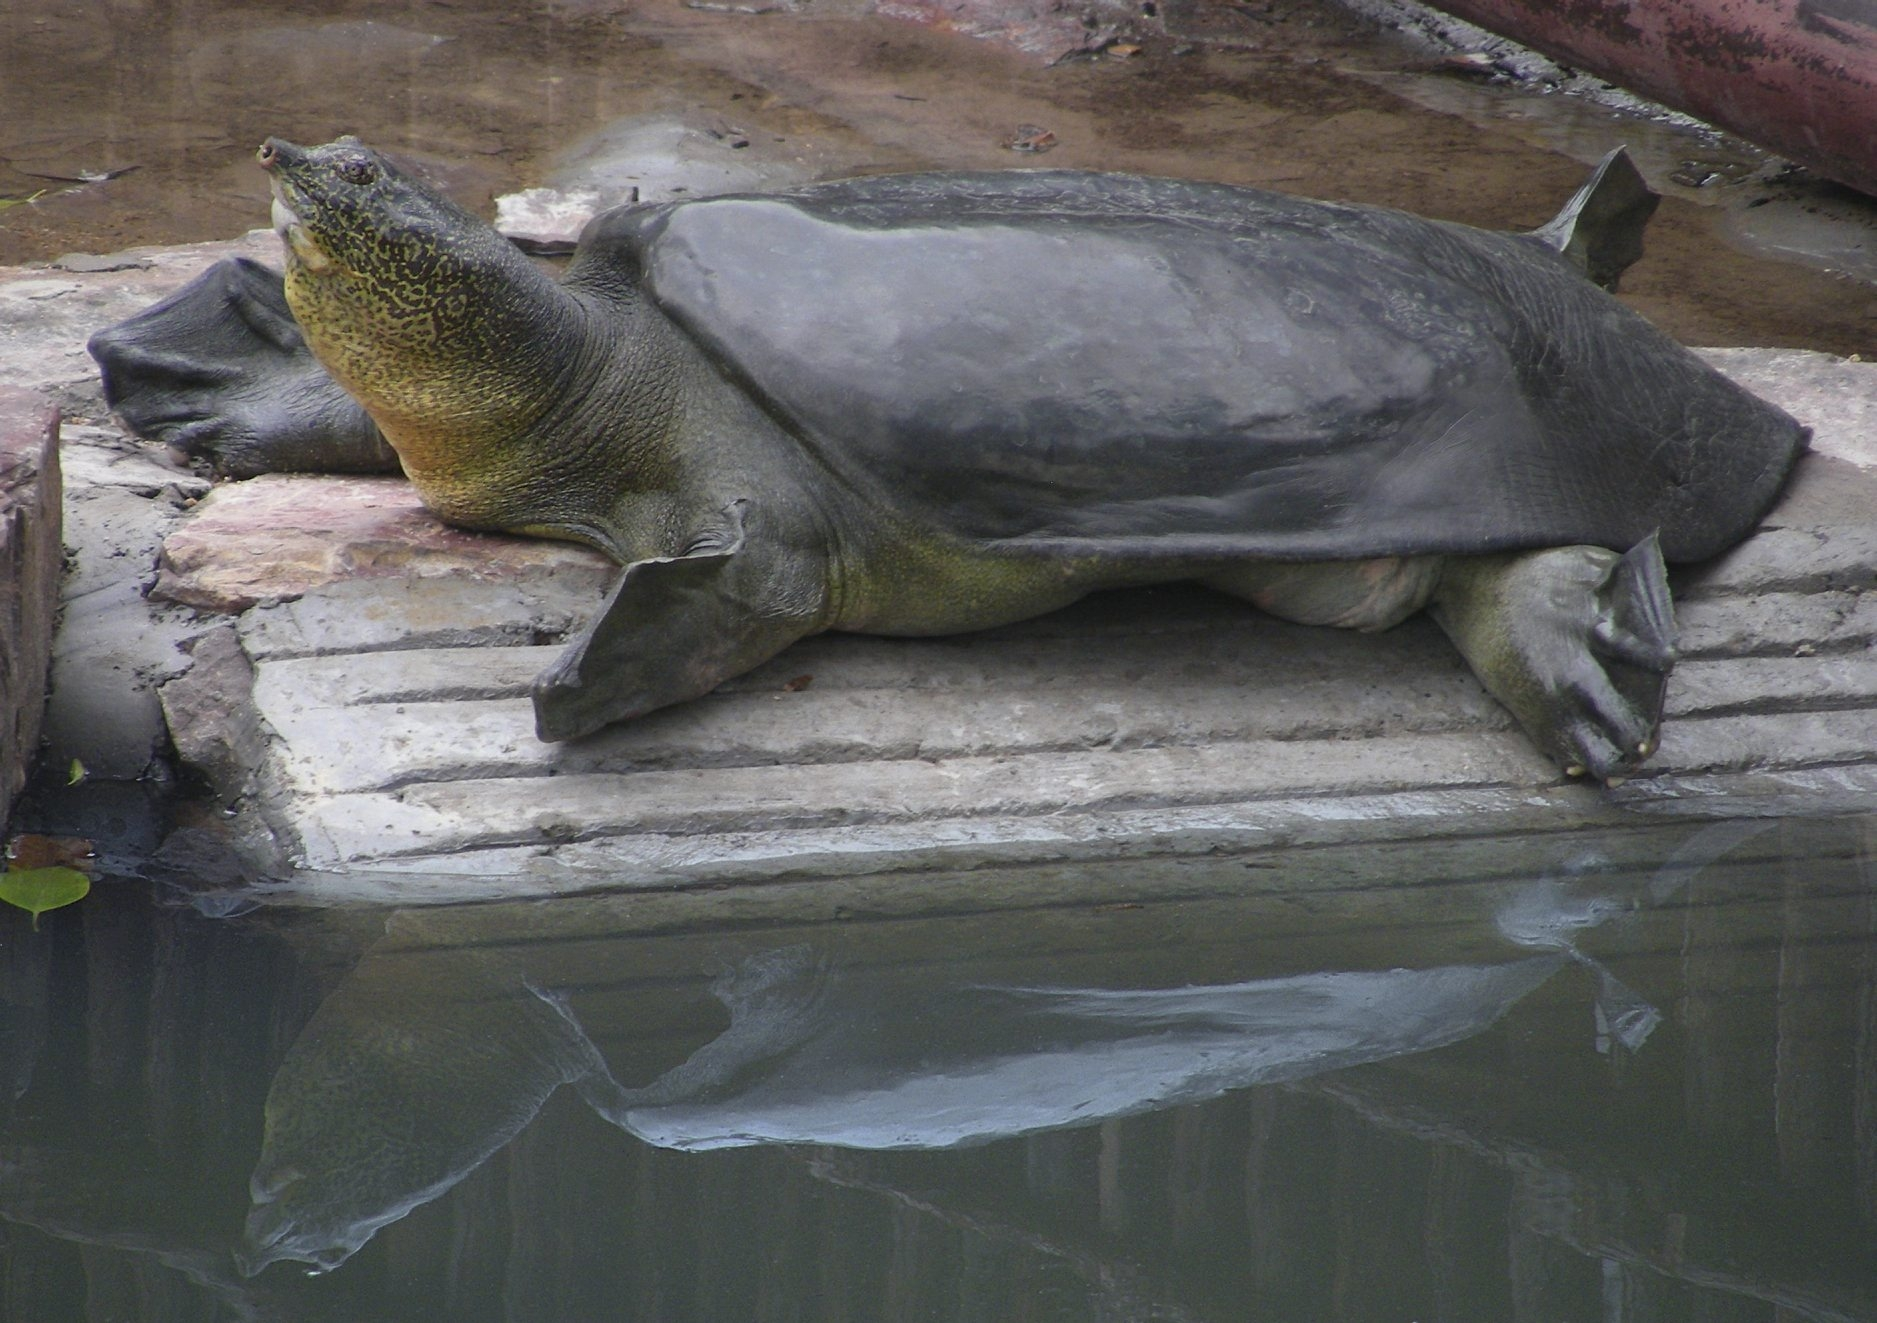 A female Yangtze giant softshell turtle, whose species has been decimated by hunting, pollution and development, lazes in a Chinese zoo. So far she has produced only infertile eggs, but veterinarians hope she will produce a few hatchlings after being artificially inseminated.